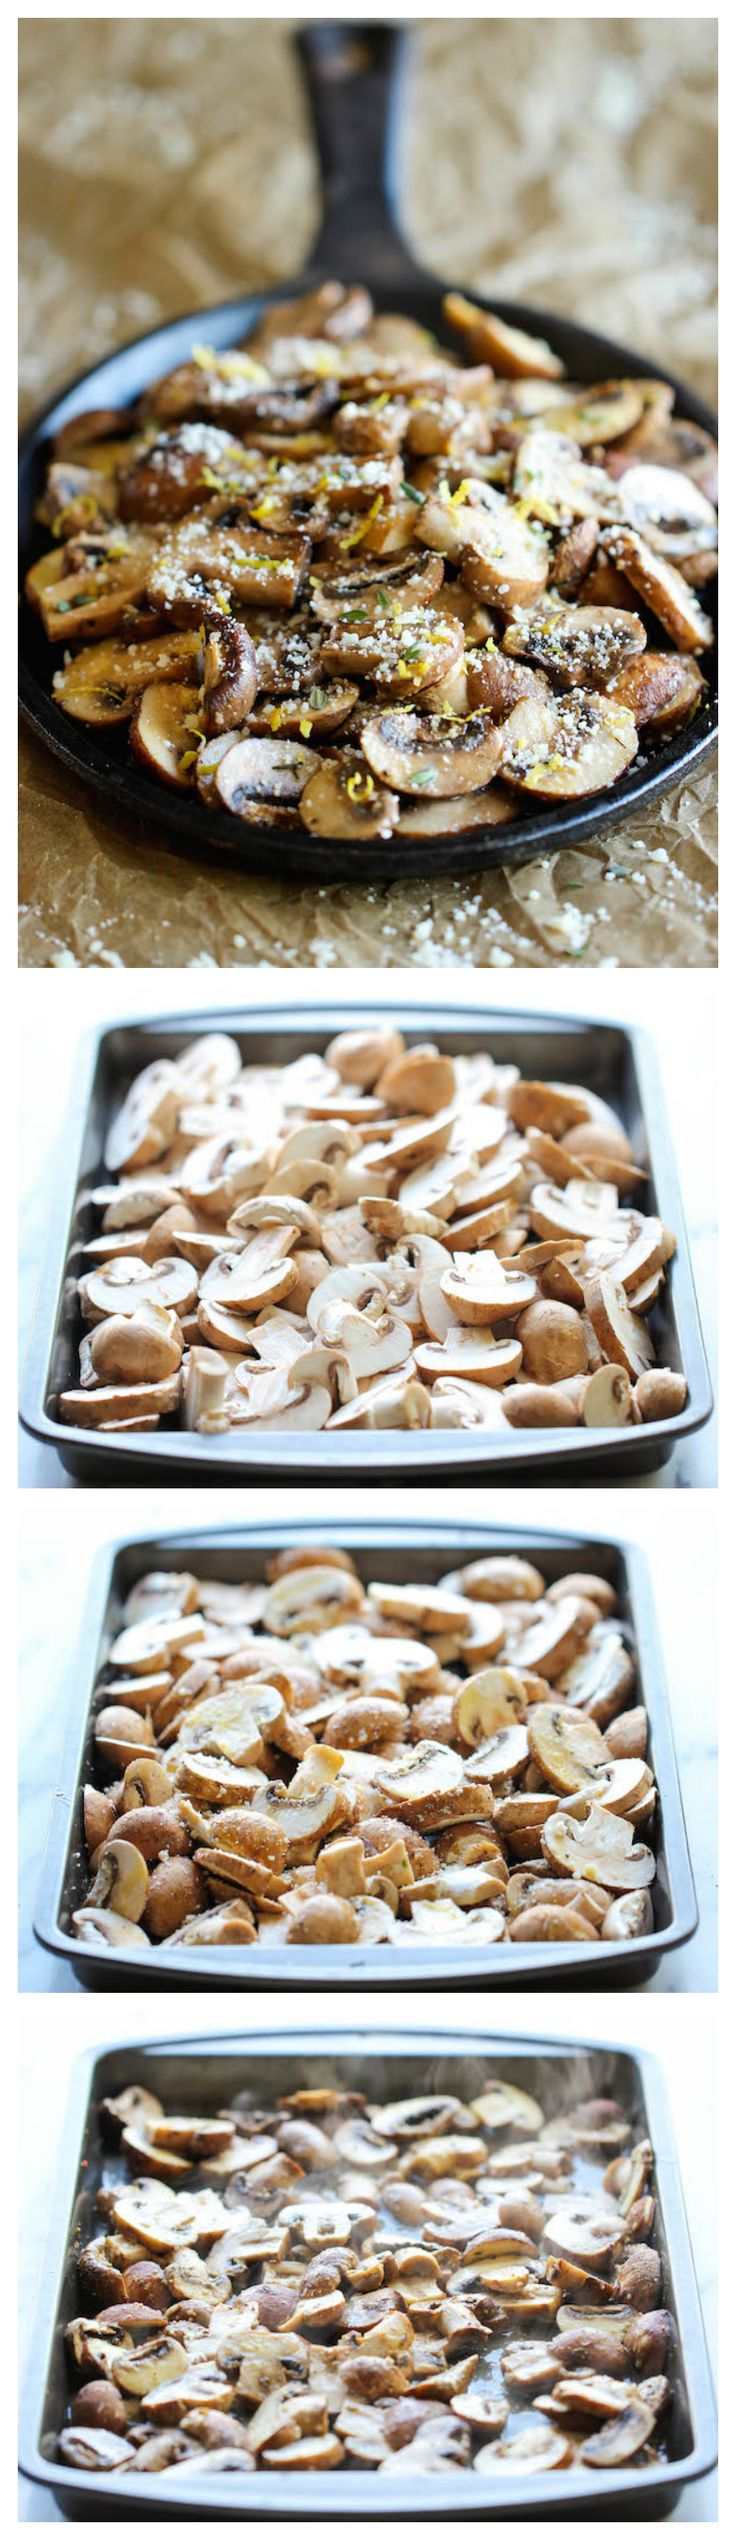 Baked Parmesan Mushrooms by damndelicious #Mushrooms #Parmesan #Easy